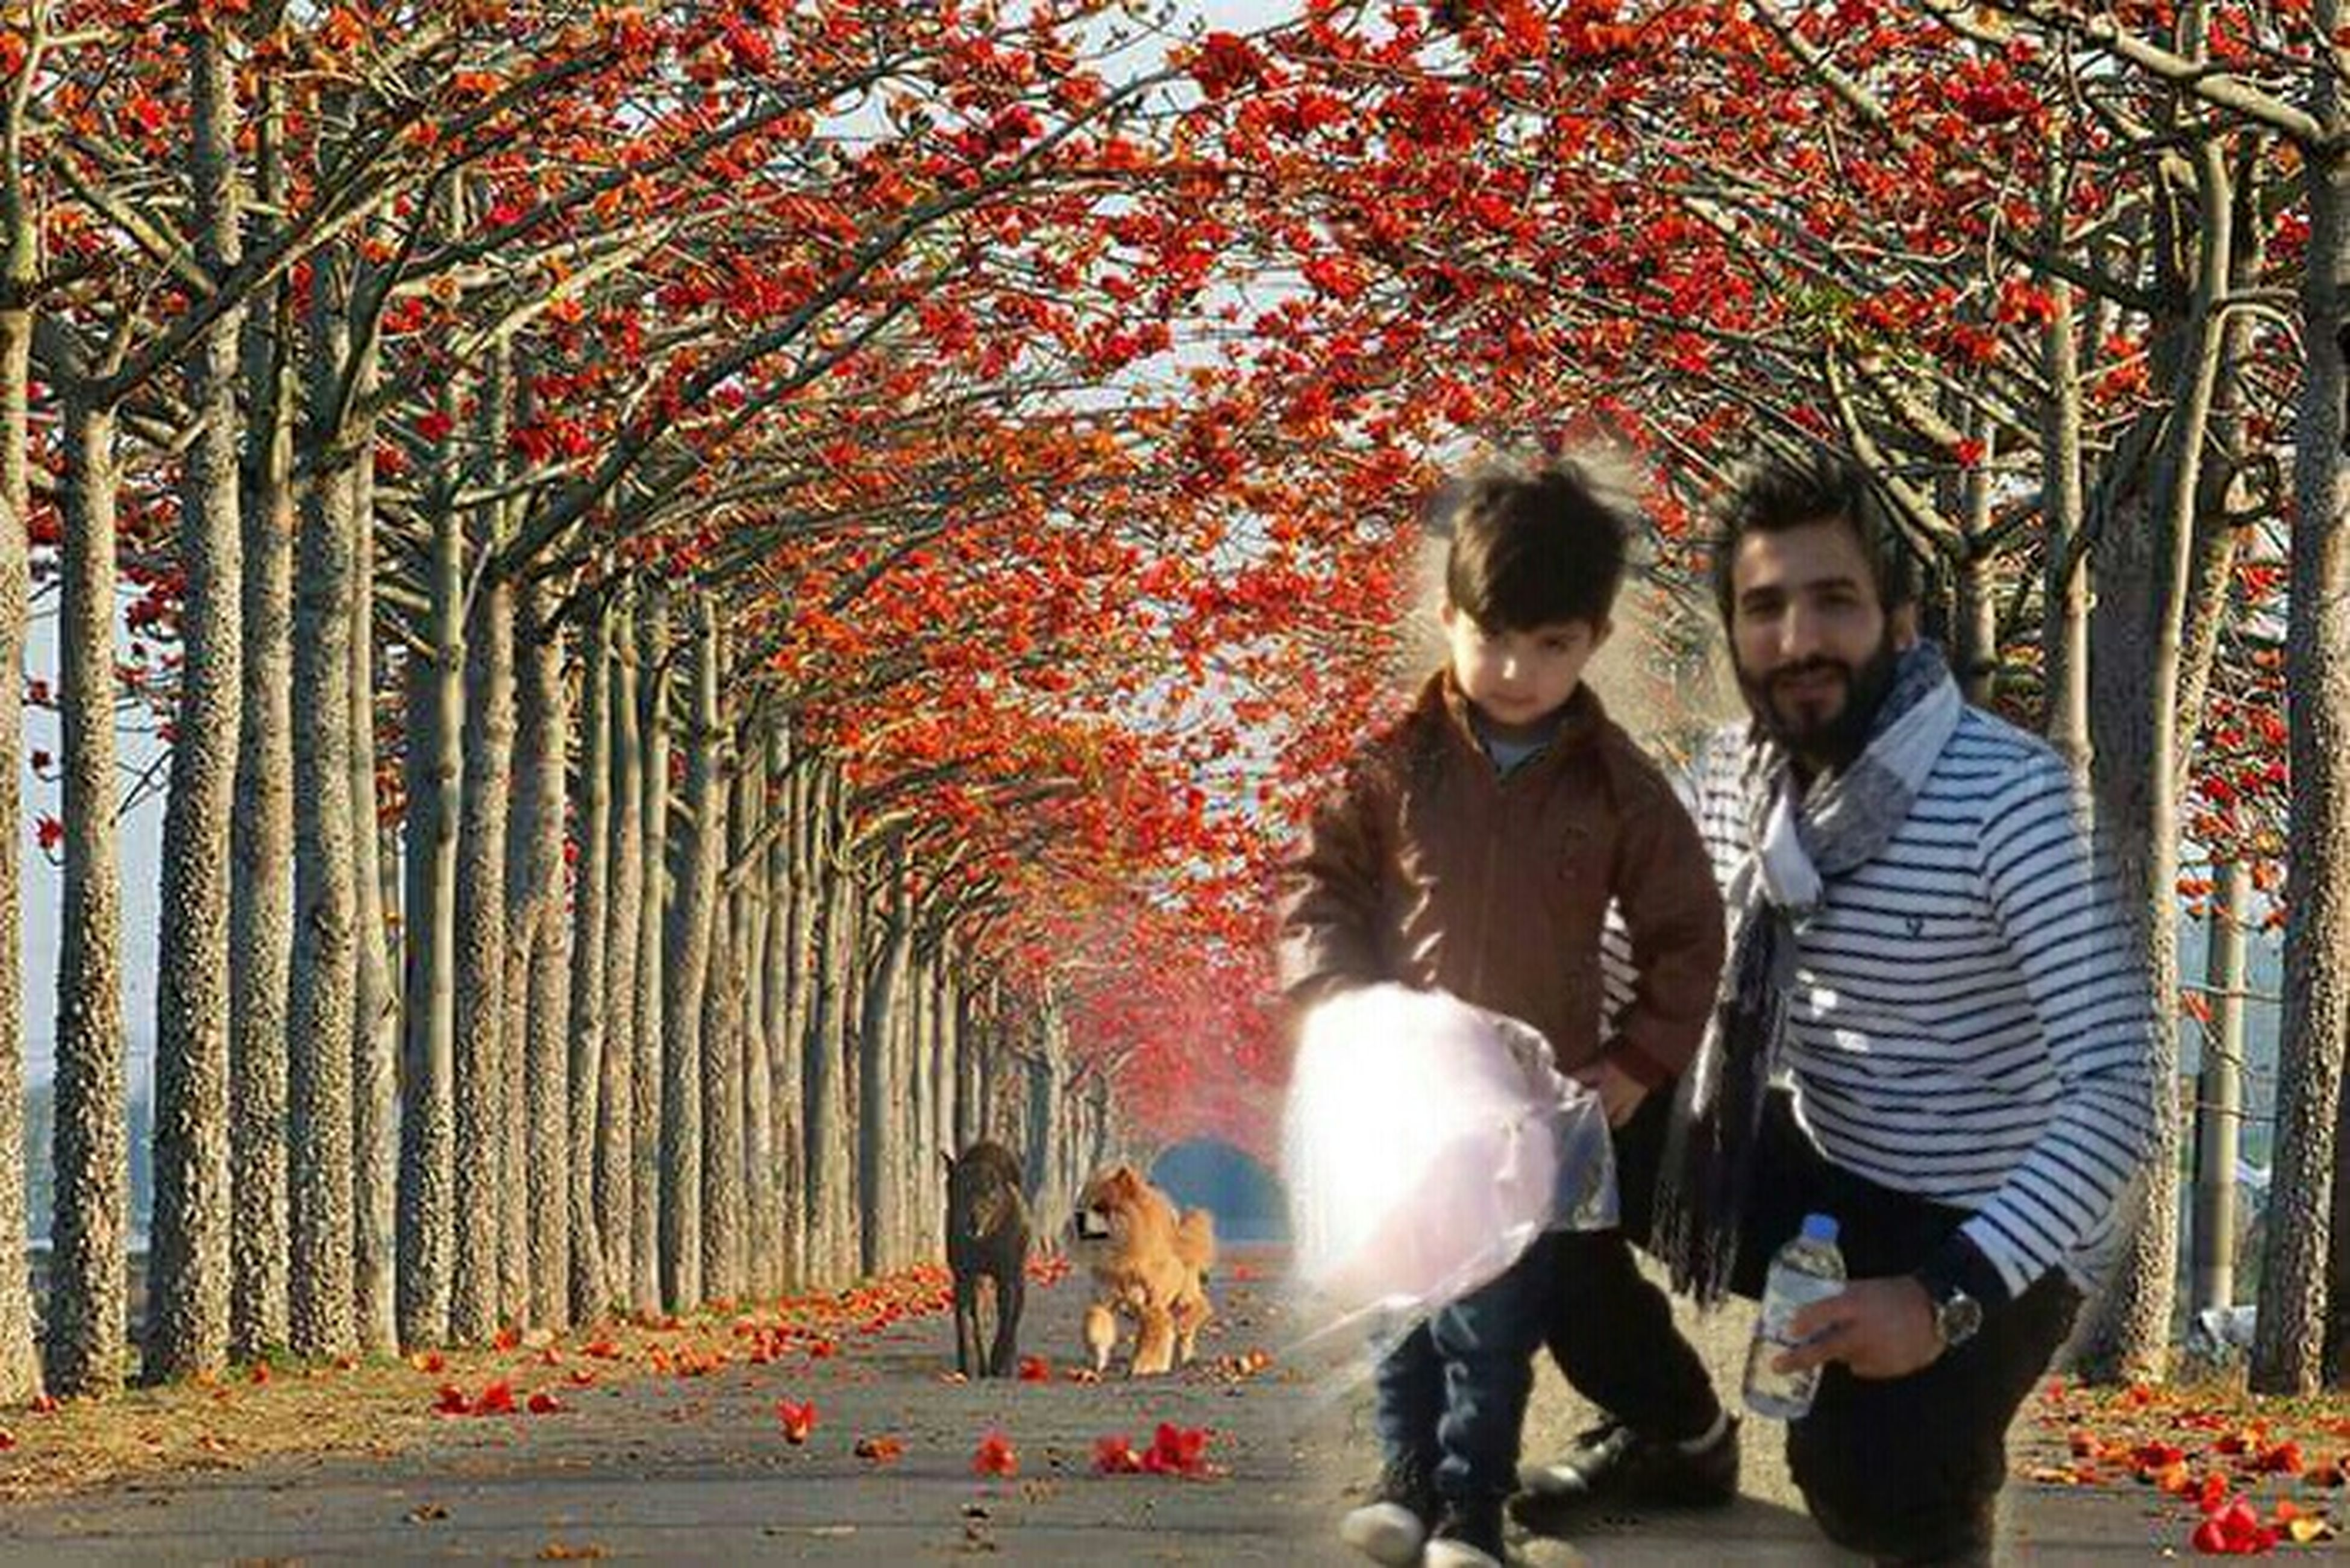 lifestyles, leisure activity, tree, casual clothing, togetherness, full length, park - man made space, girls, childhood, bonding, love, person, rear view, walking, men, standing, boys